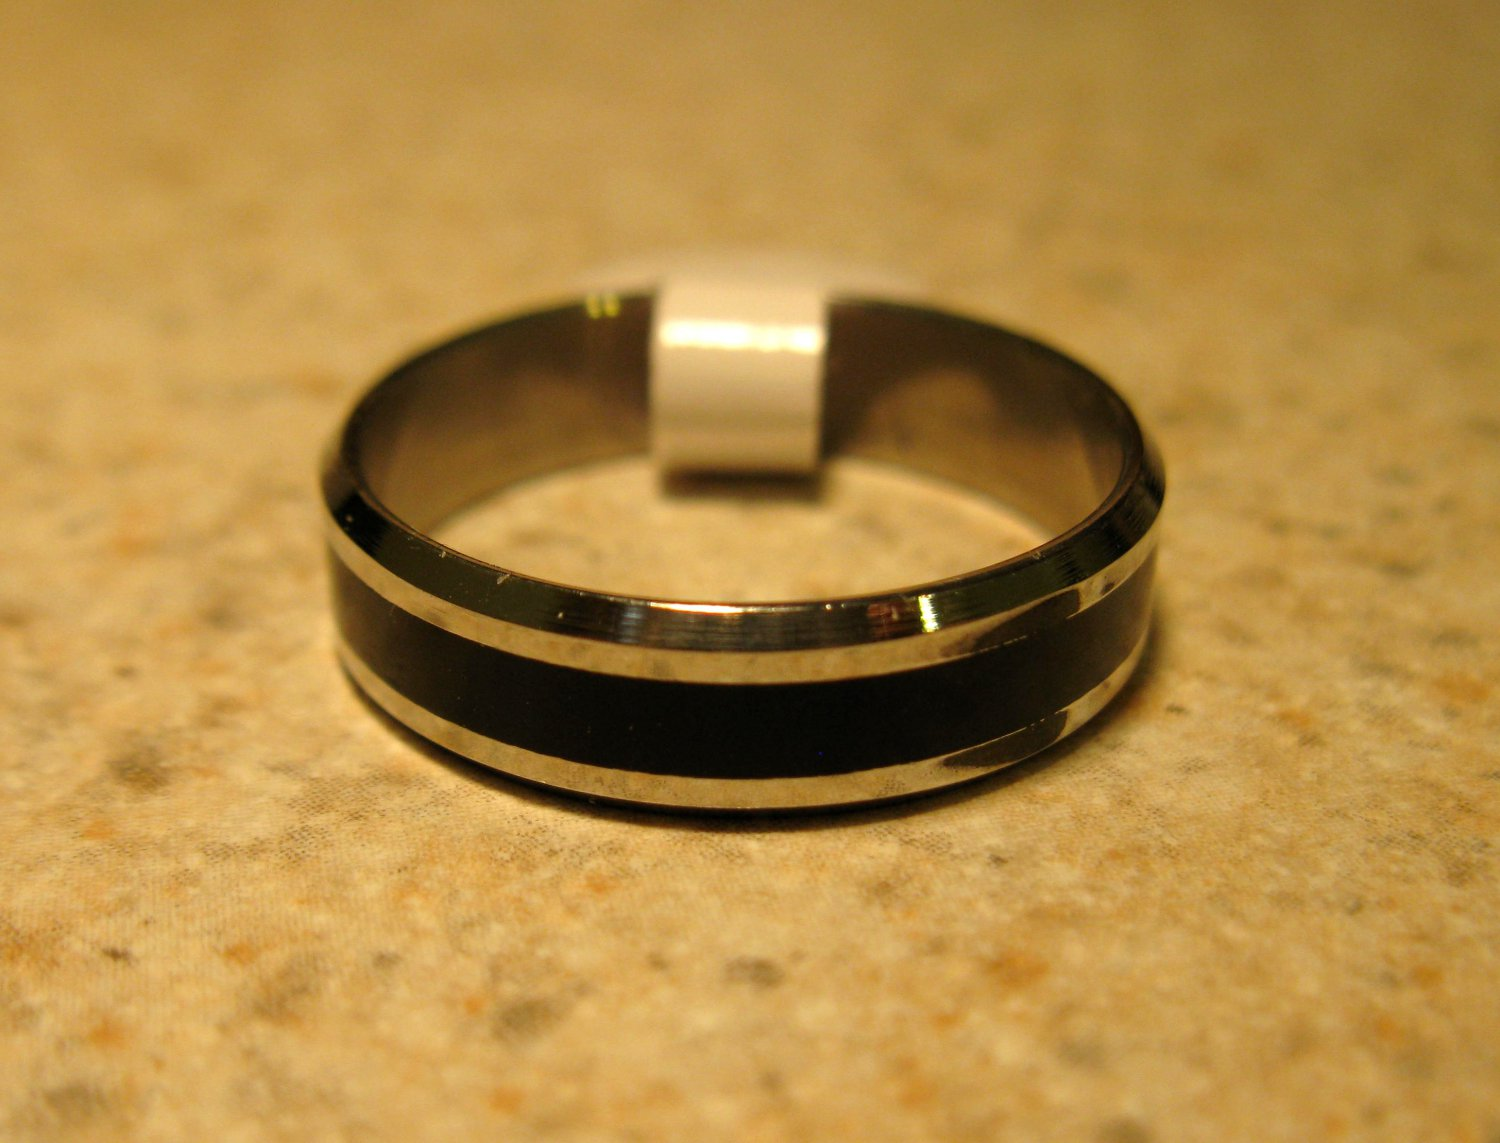 Silver with Black Wedding Band Rings Unisex Sizes 10 New #804